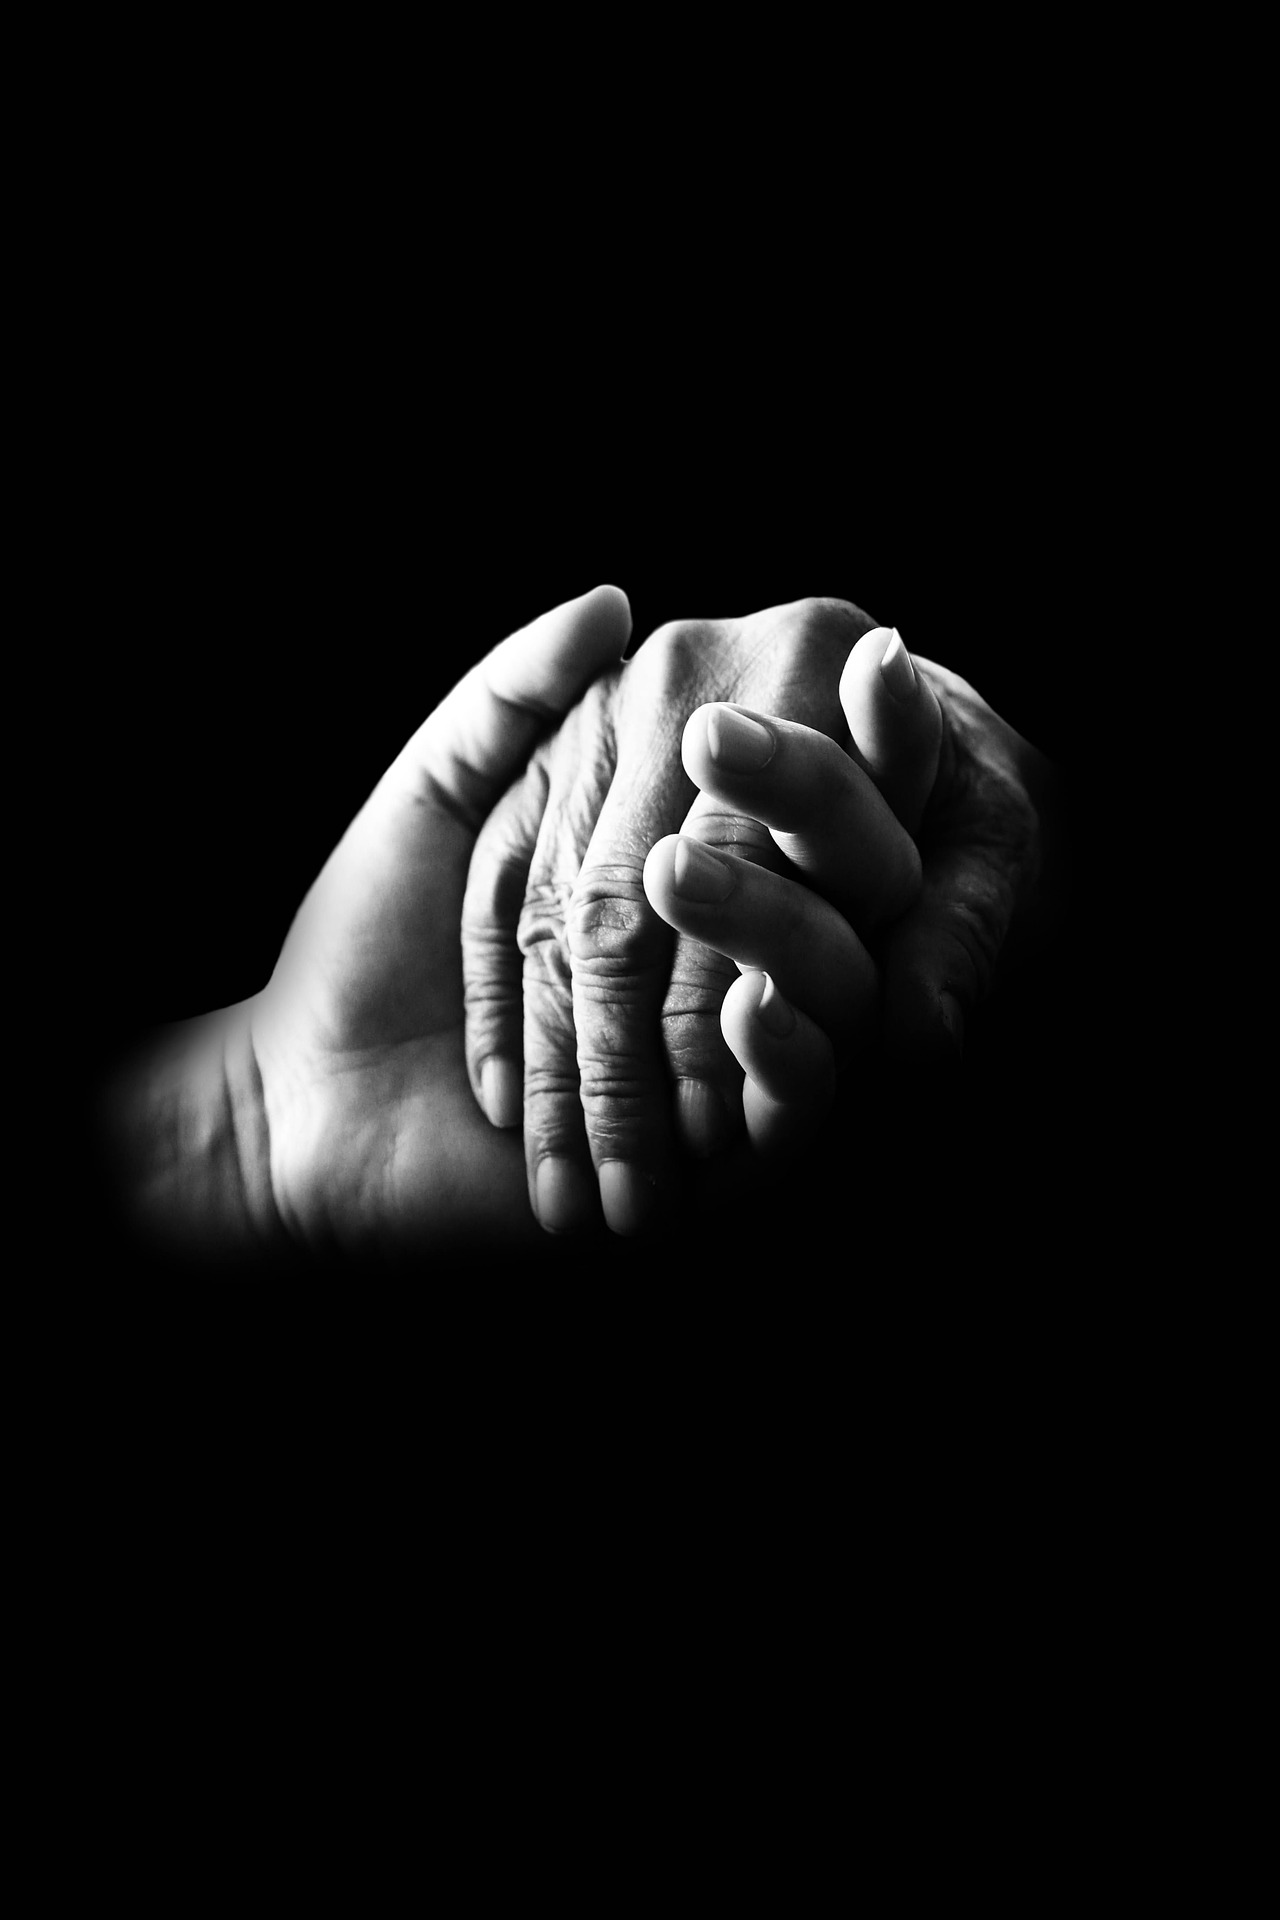 picture of two hands, one hand holding the other